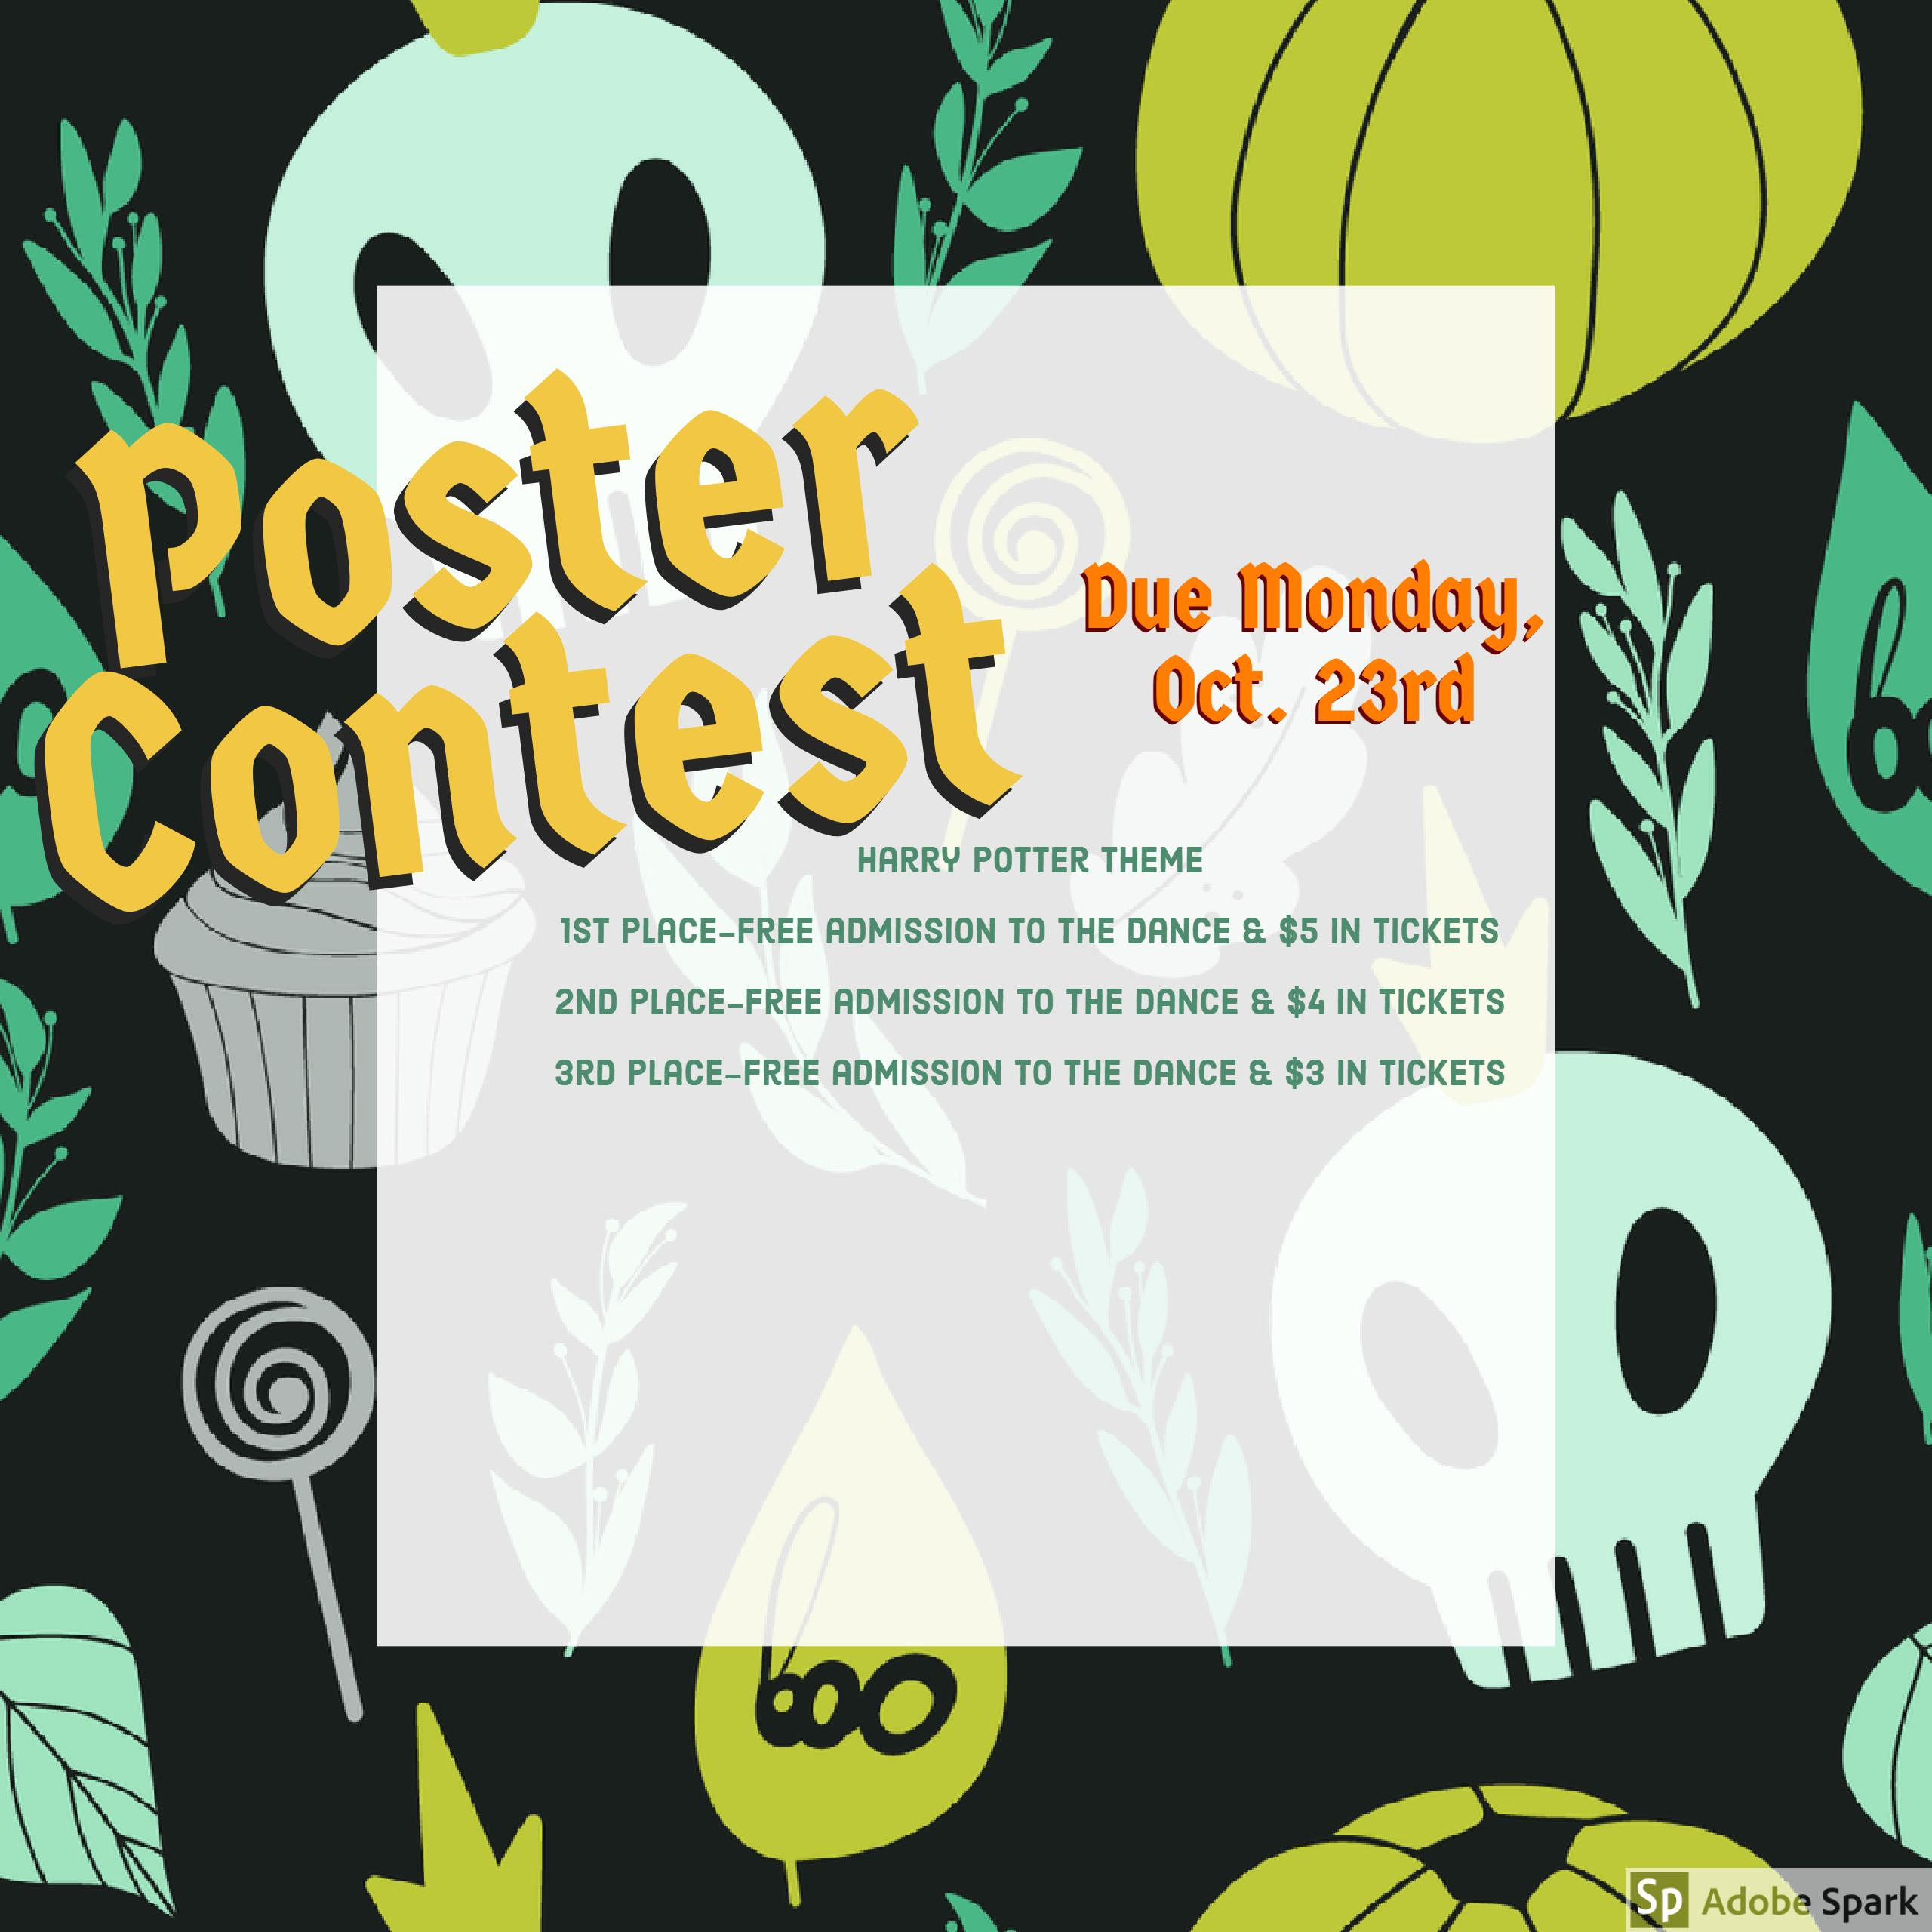 Poster Contest for Harry Potter Week/Dance